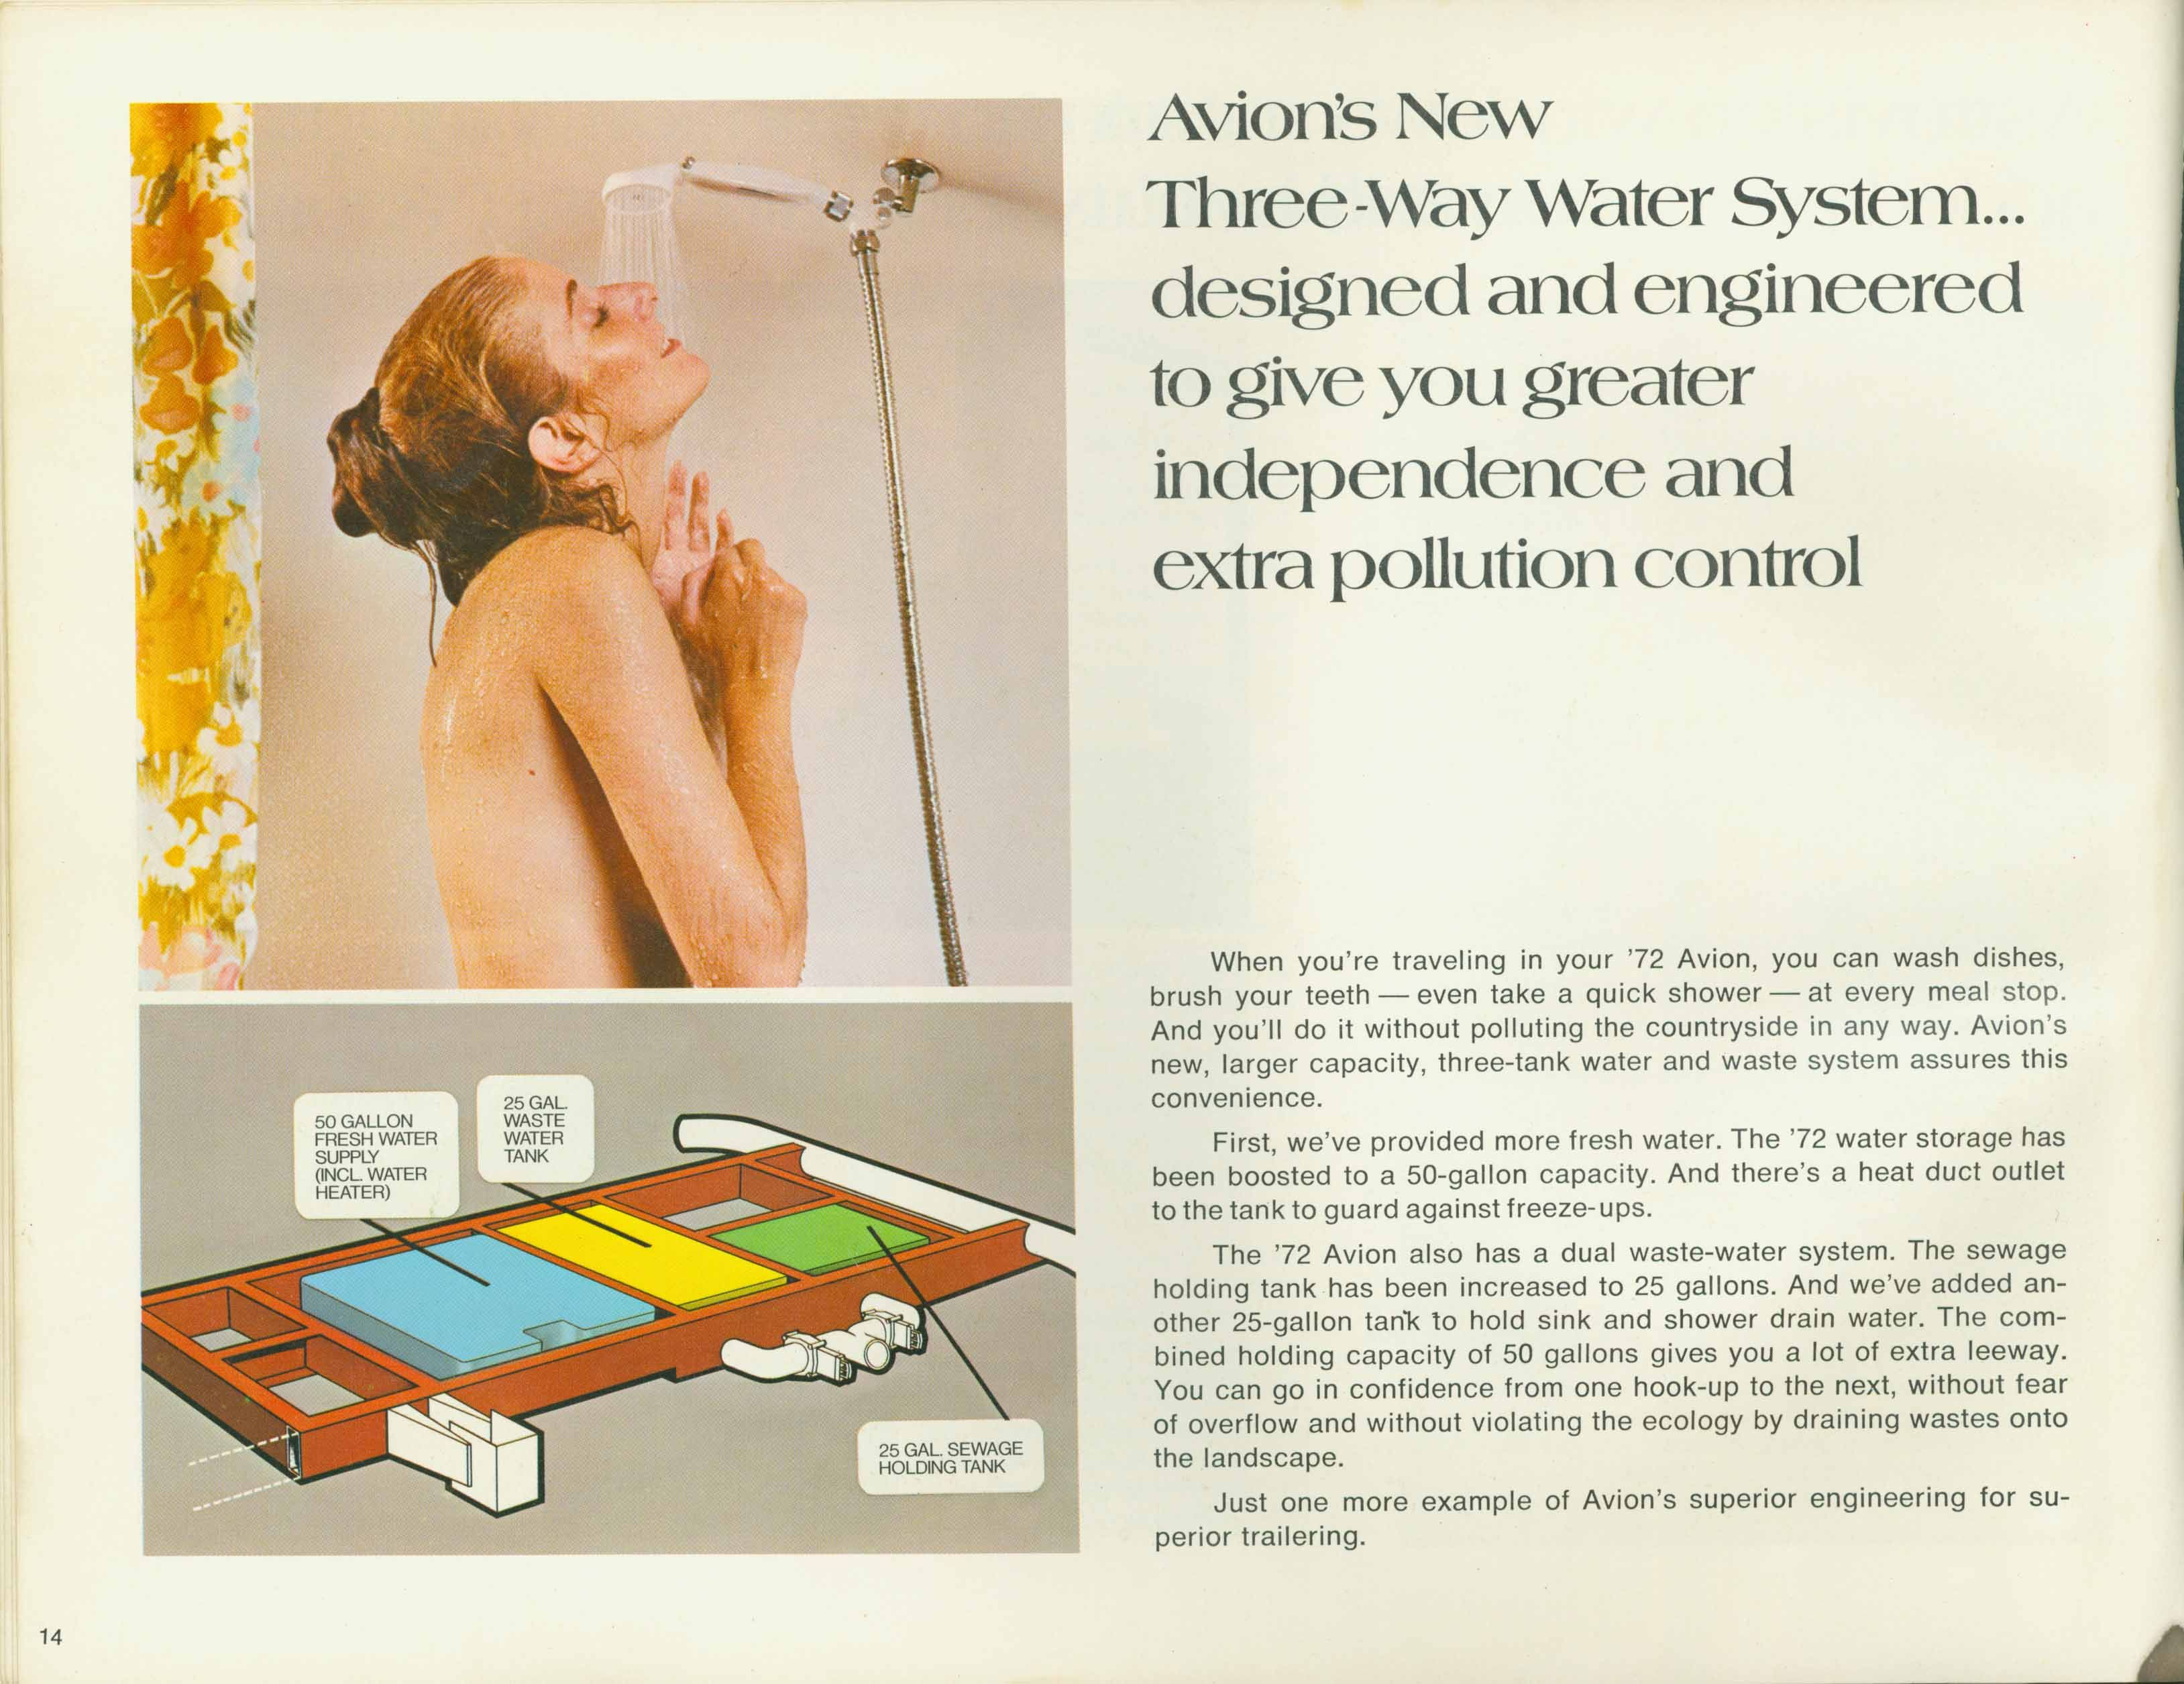 1972 avion wiring diagram wiring diagrams schematics image result for avion trailer floor renovation 196x avions image result for avion trailer floor renovation at basic wiring diagram pooptronica Gallery